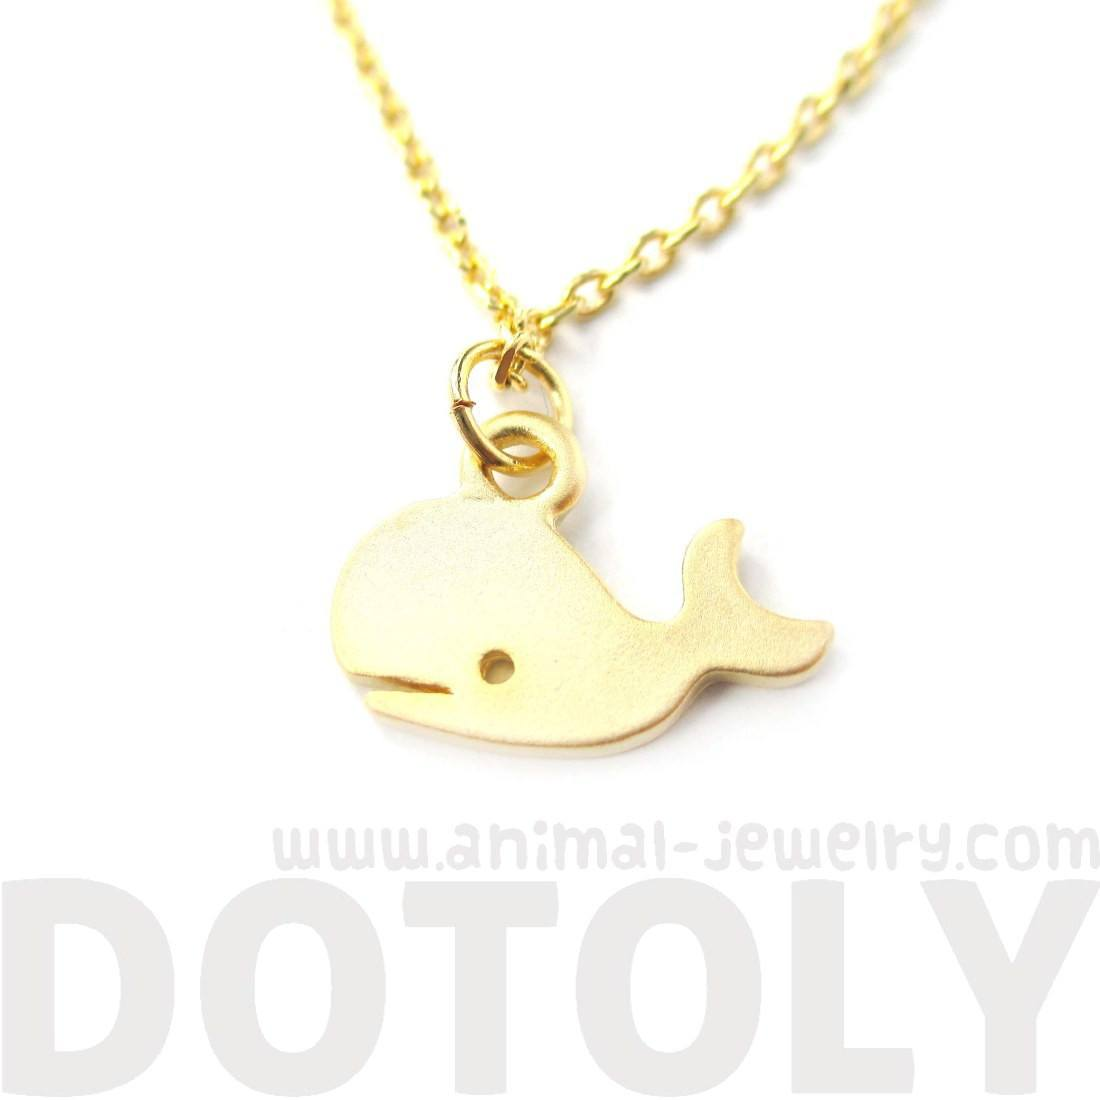 Adorable Whale Shaped Animal Inspired Charm Necklace in Gold | DOTOLY